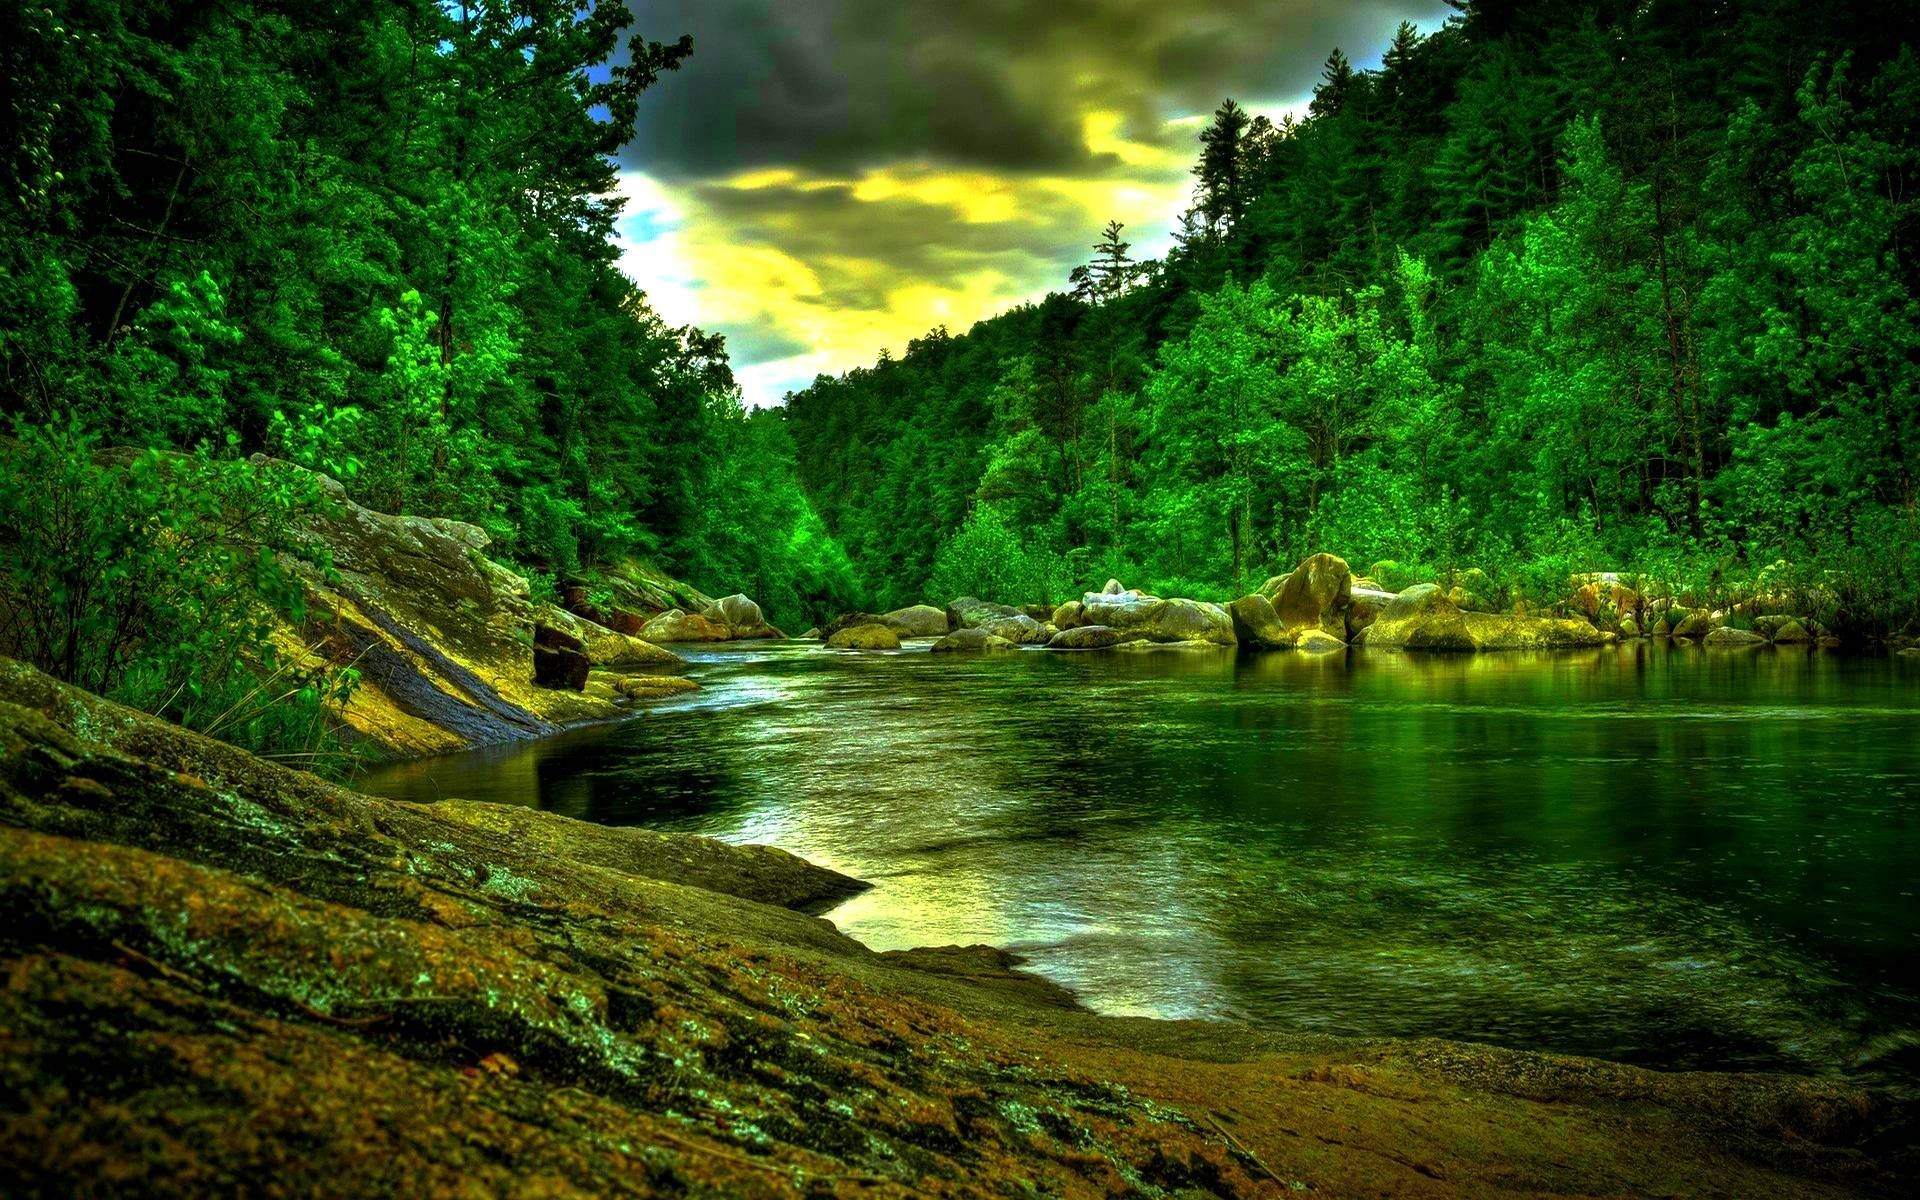 Rainforest Wallpaper 1080p Tjz In 2020 Nature Desktop Wallpaper Beautiful Forest Nature Wallpaper